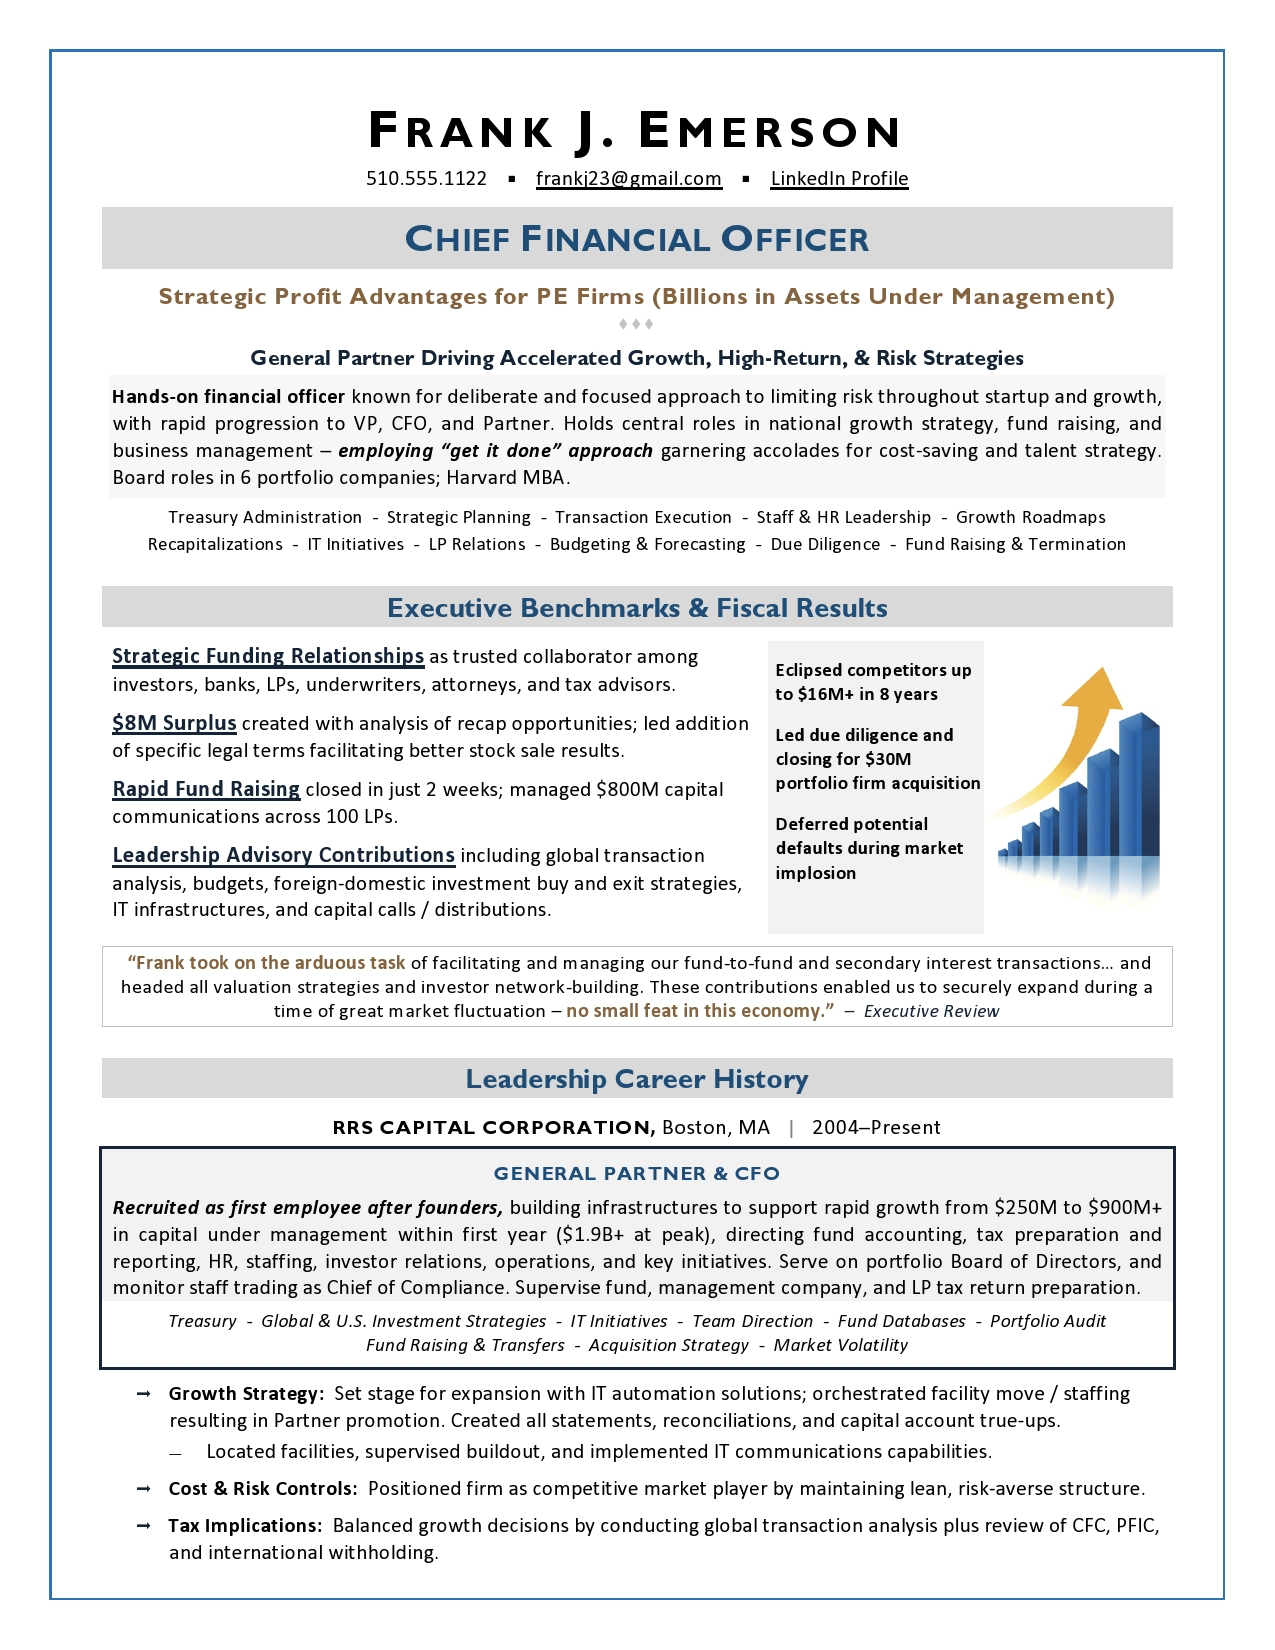 Private Equity CFO Resume Sample from Top Executive Resume